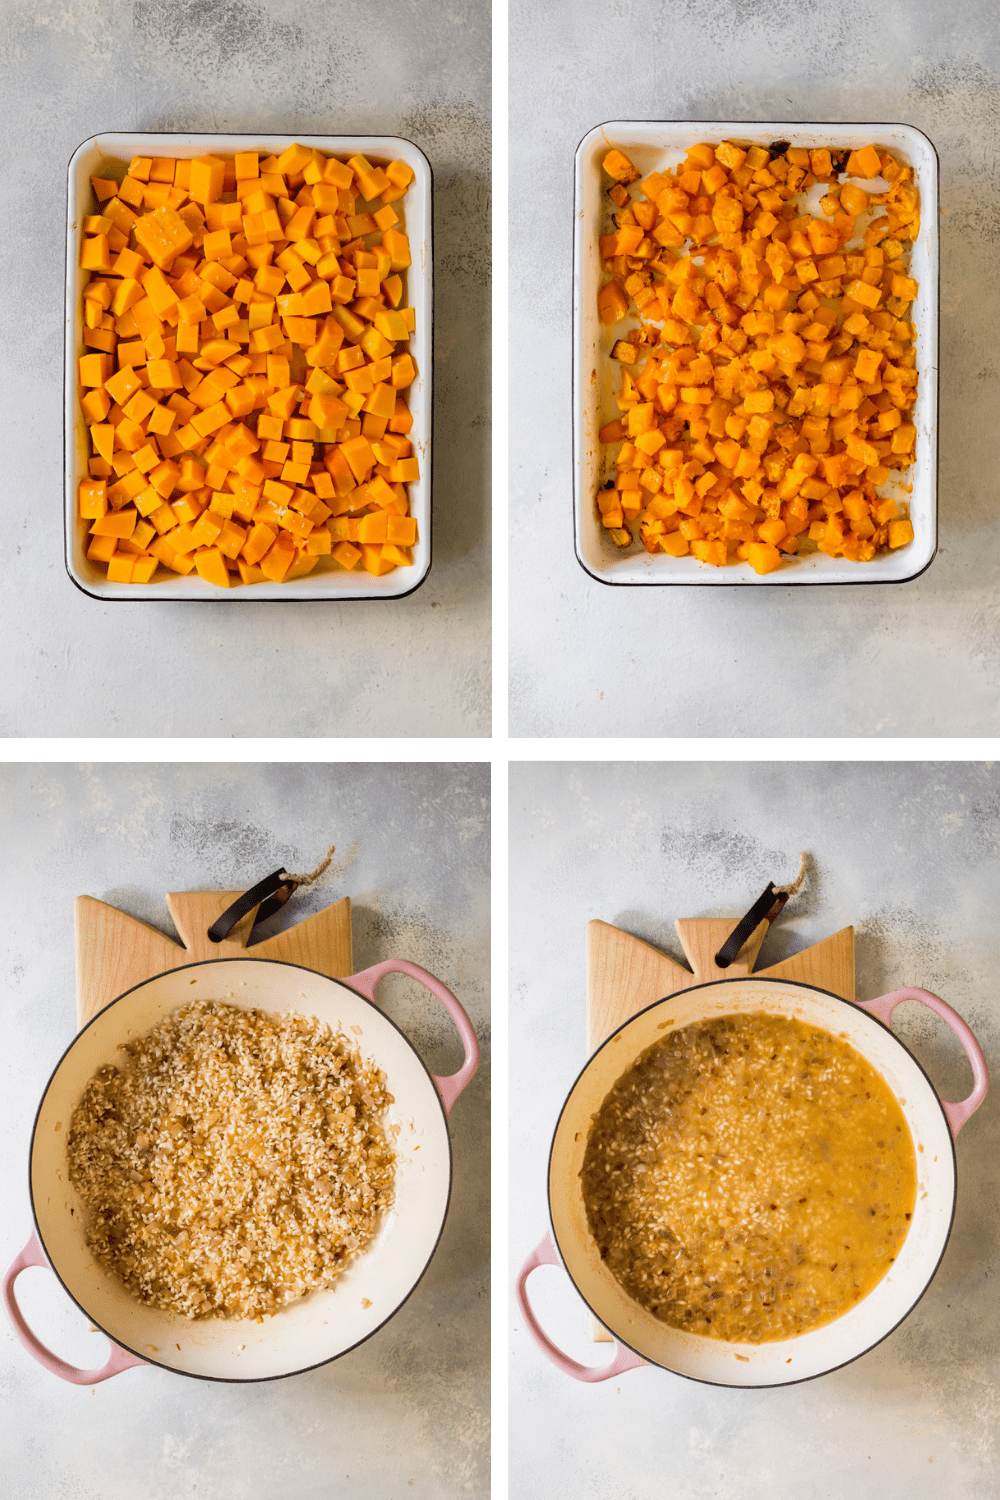 4 images showing the process of roasting butternut squash and cooking rice.